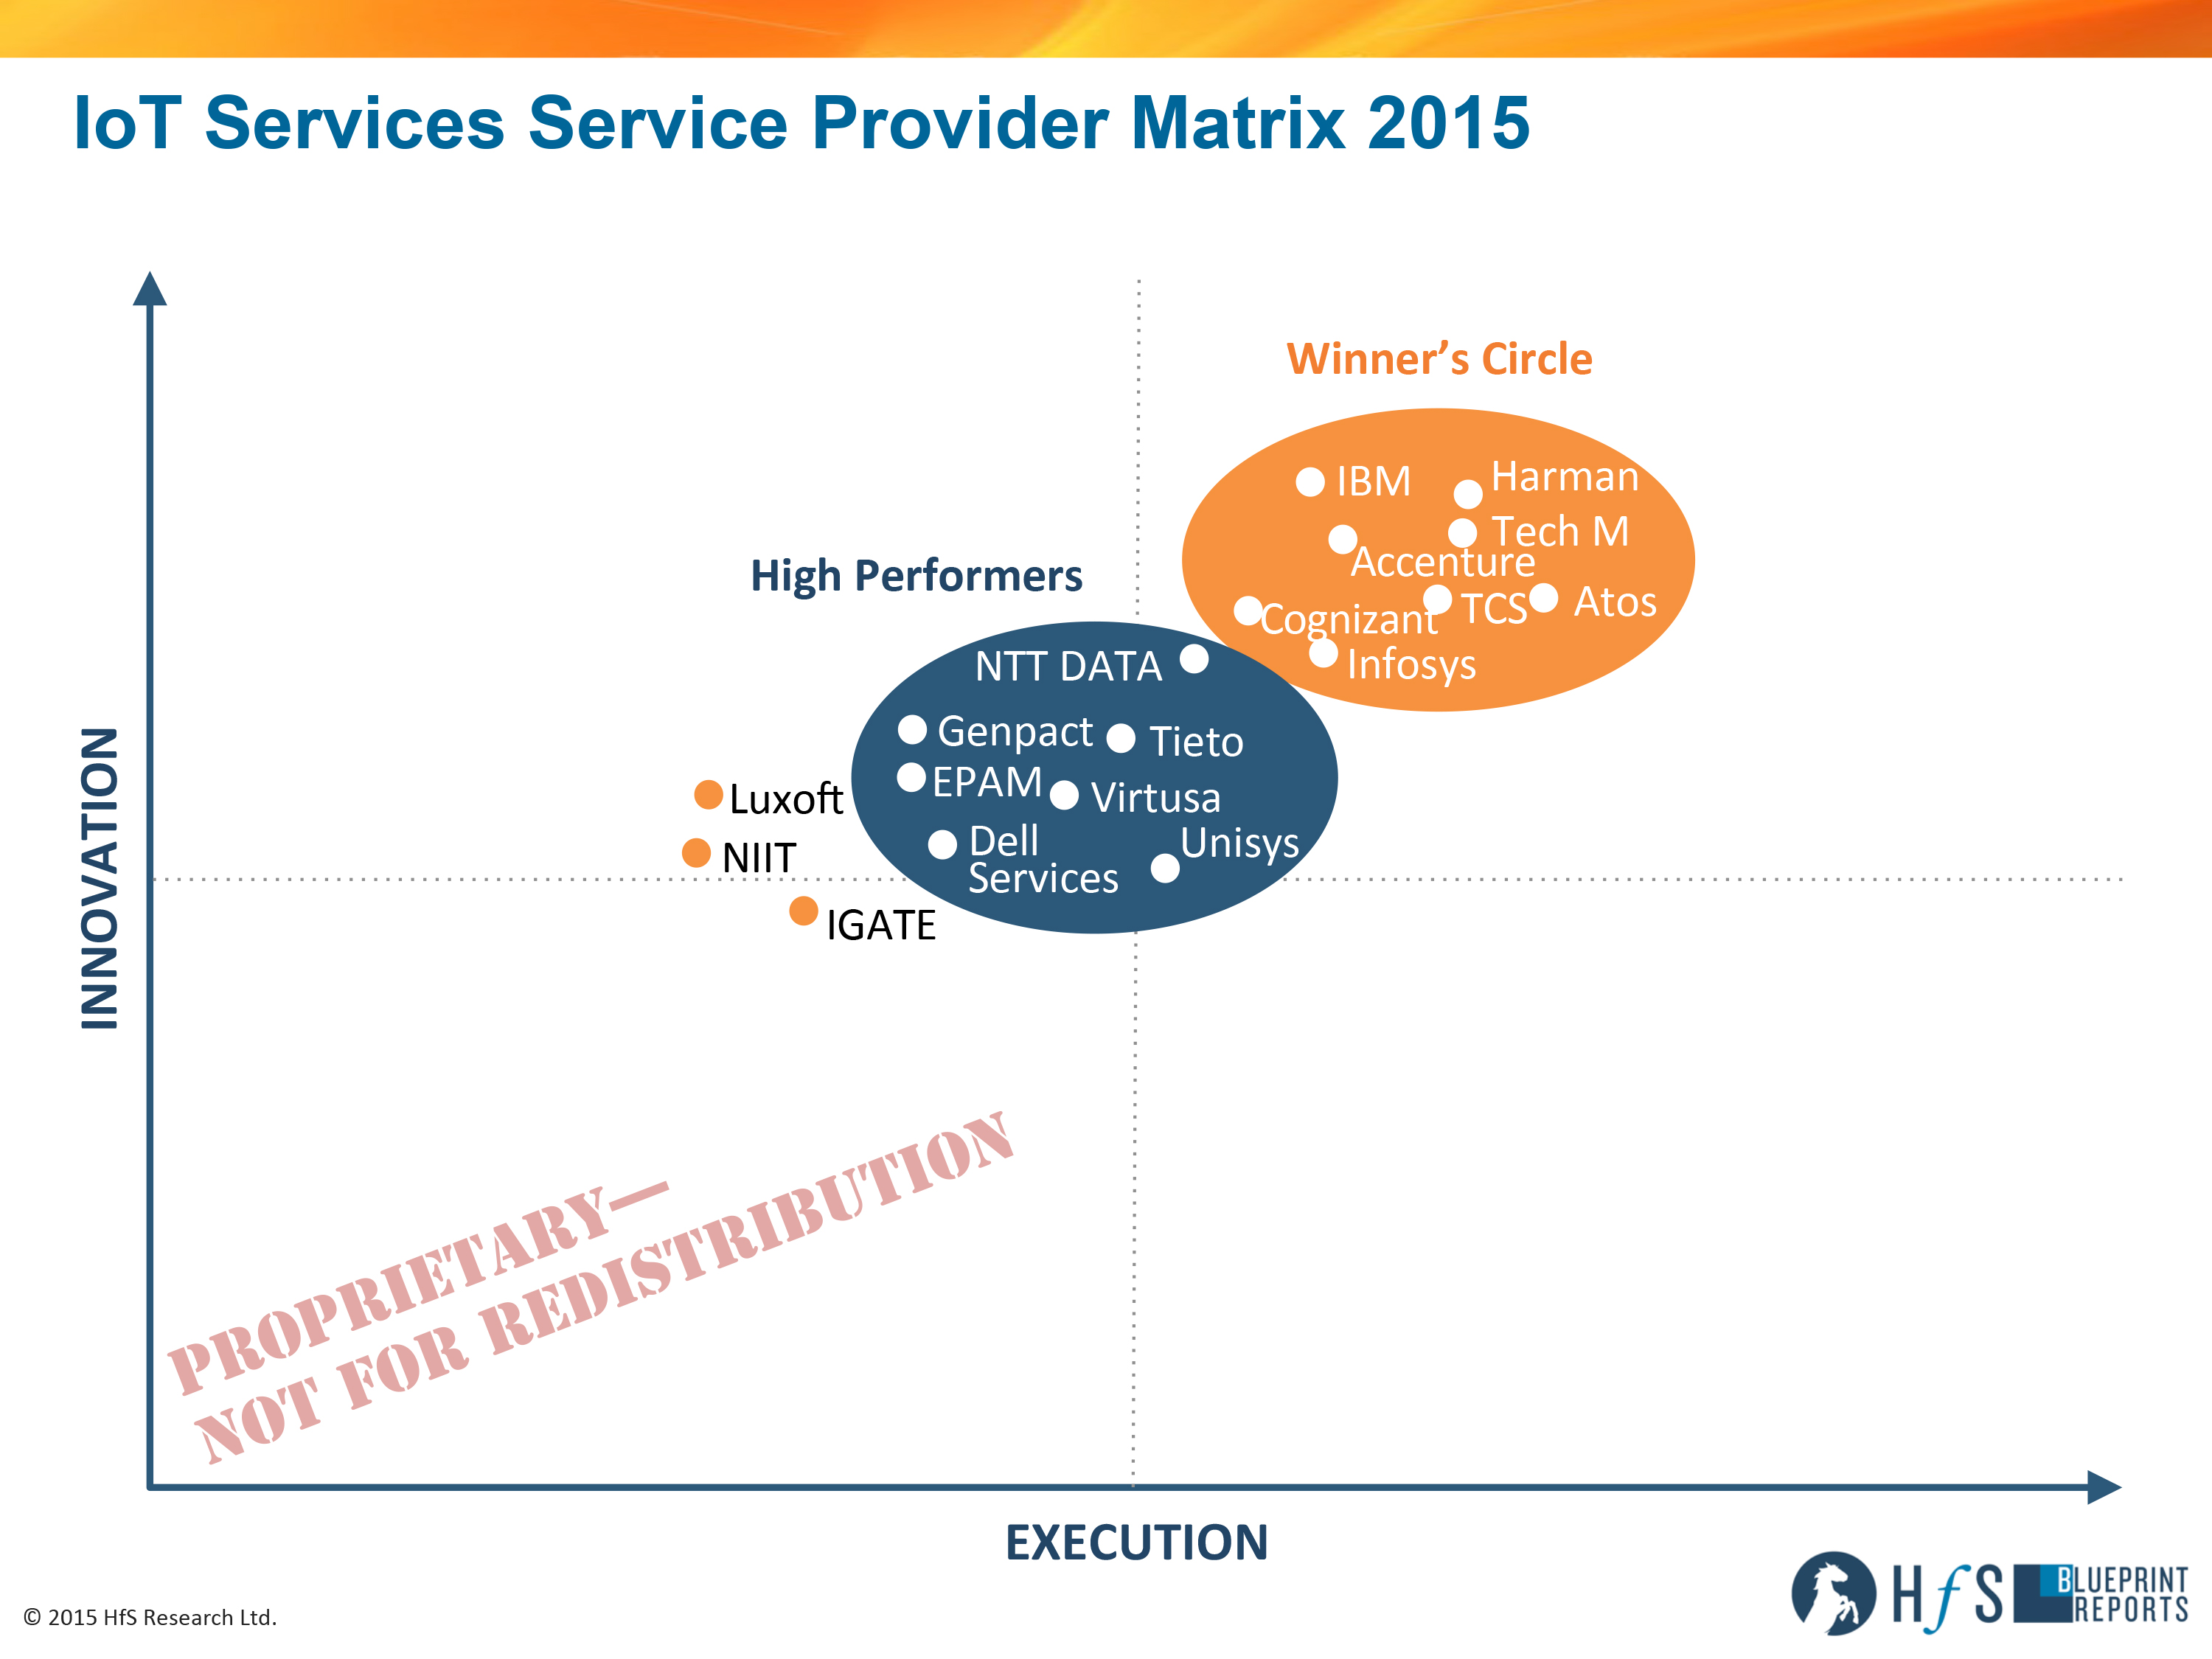 Harman tech mahindra ibm accenture and atos leading the rs1510hfs blueprint iot services 2015 axis blog malvernweather Choice Image